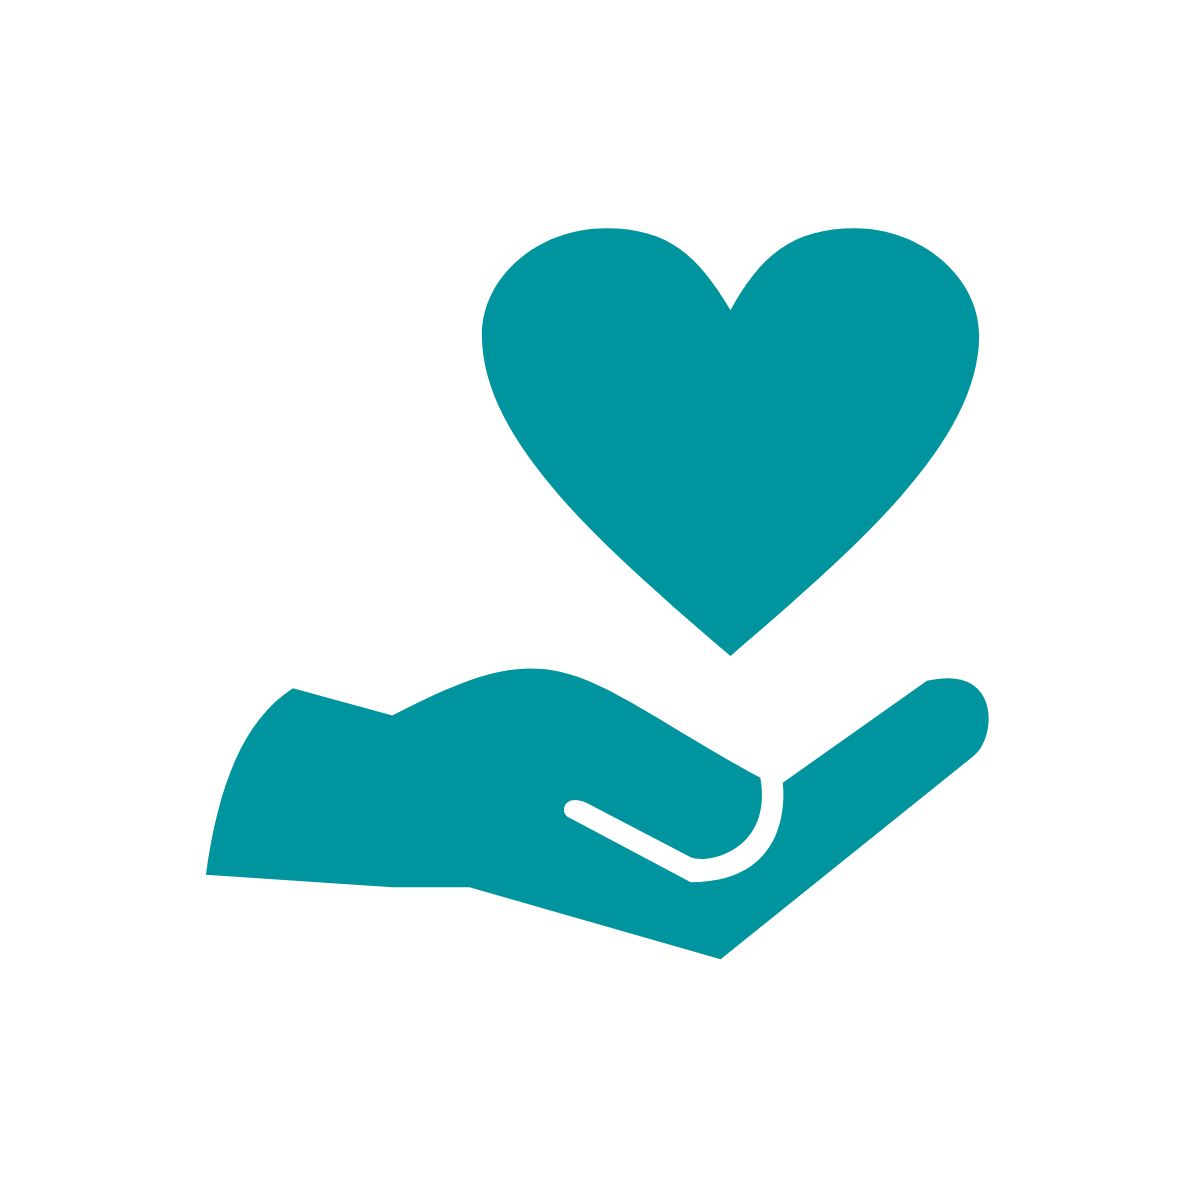 Icon of hand holding heart